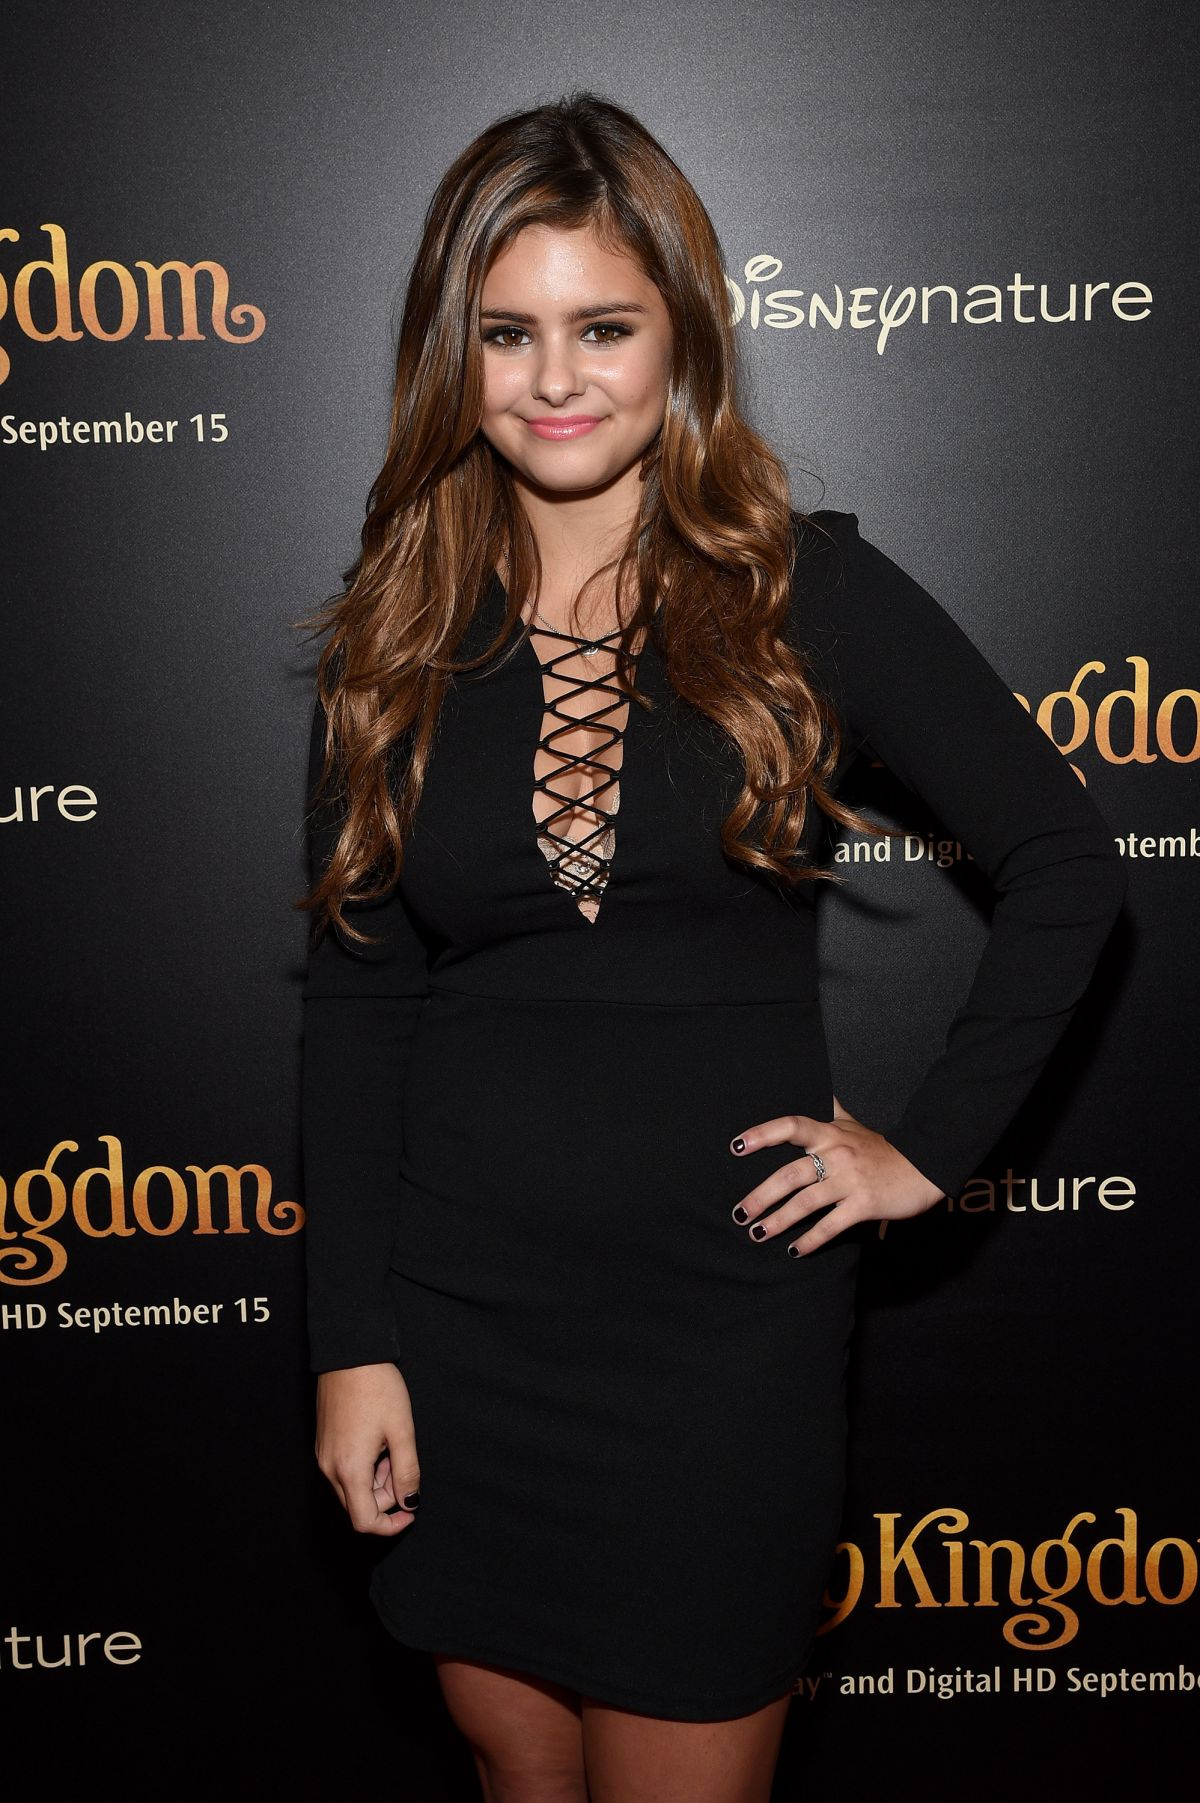 JACQUIE LEE at Monkey Kingdom Special Screening in New York 09/02/2015